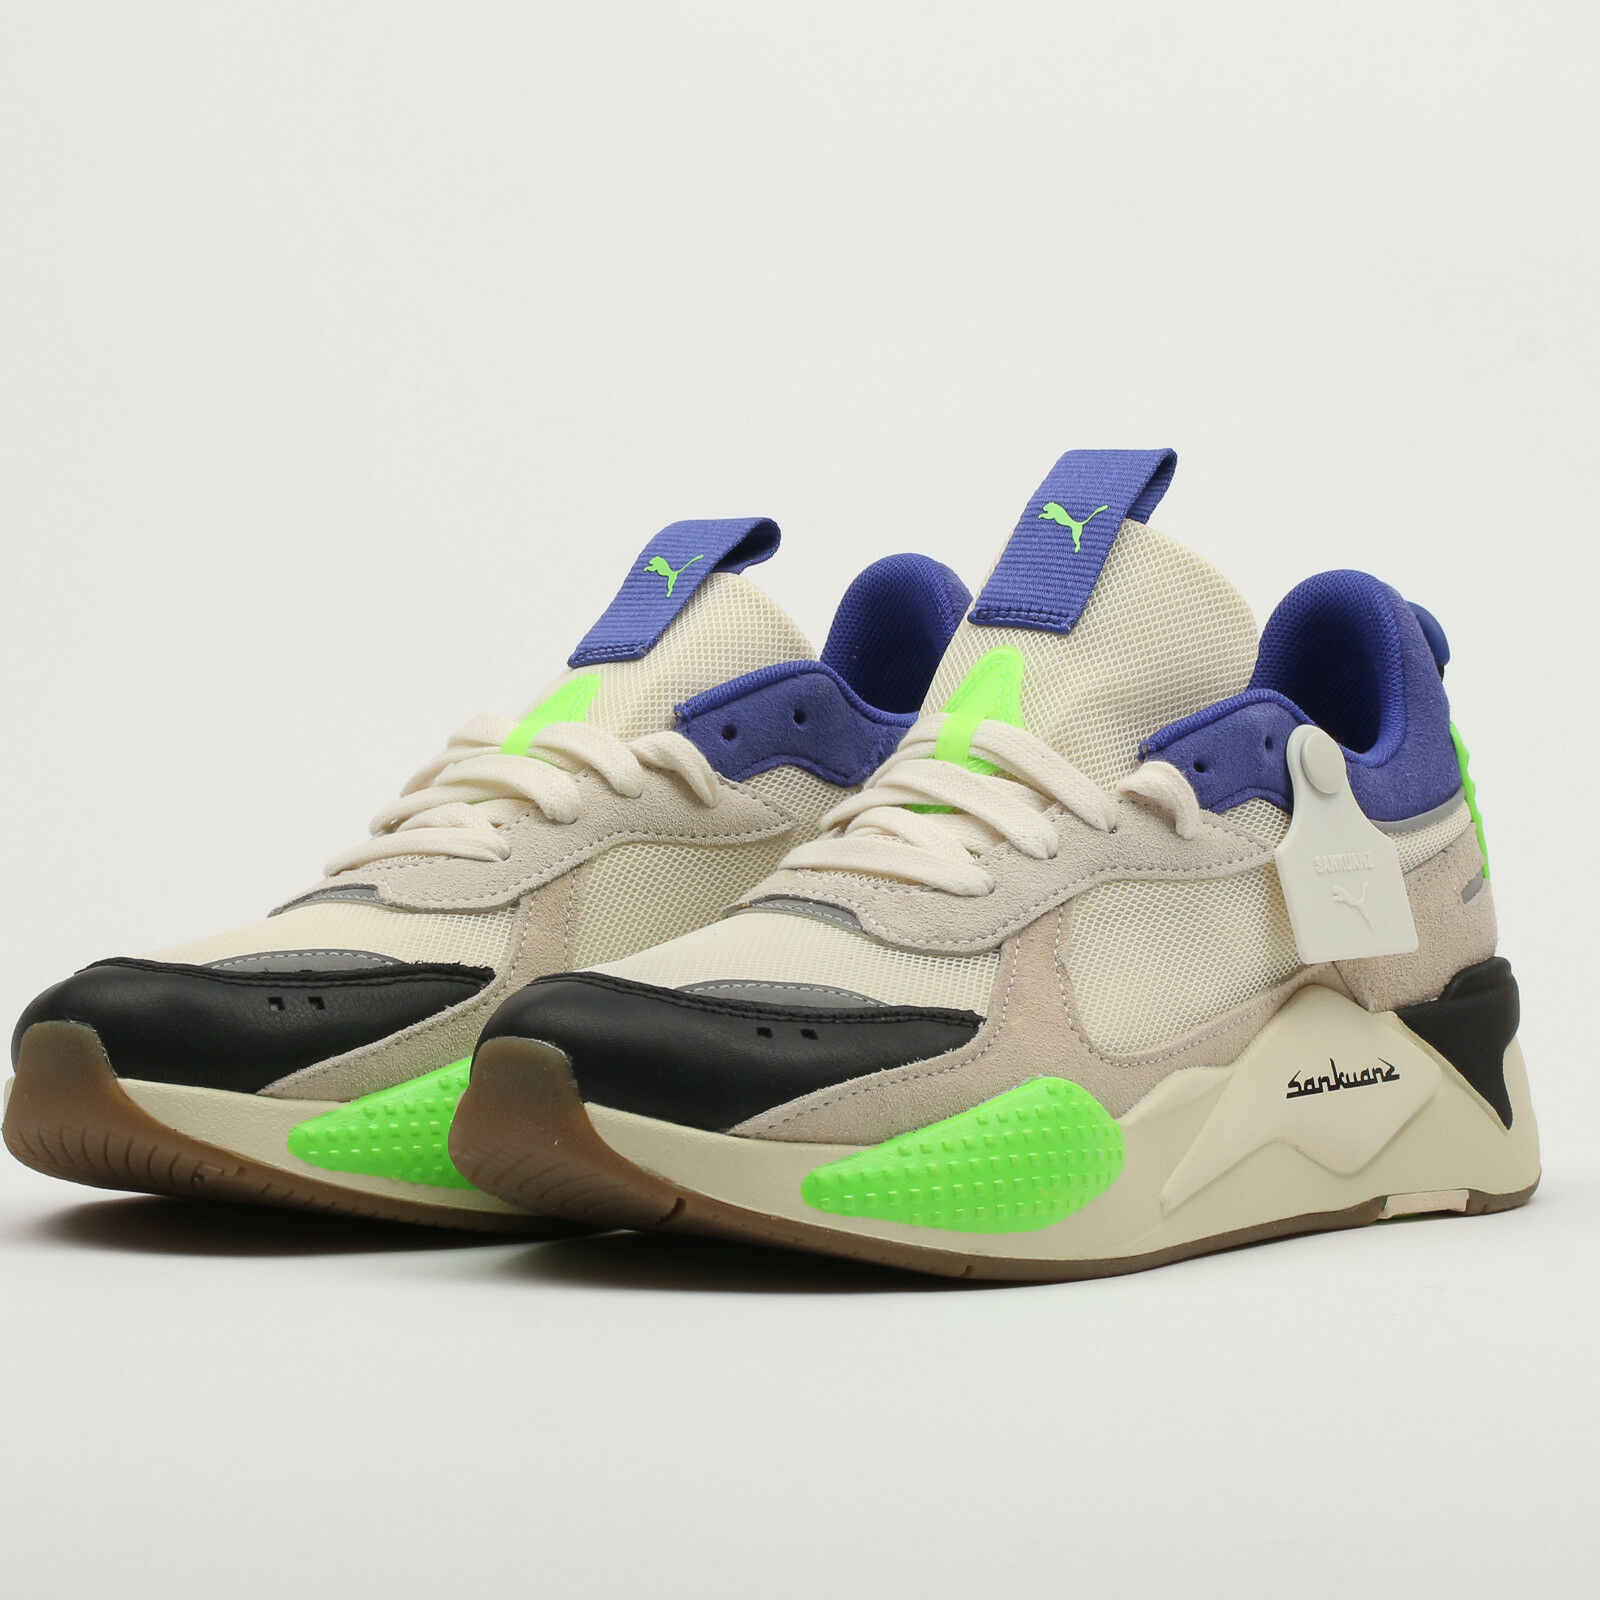 Puma RS-X Sankuanz cloud cream - royal Blau EU 41, Männer, Beige, 369610 01